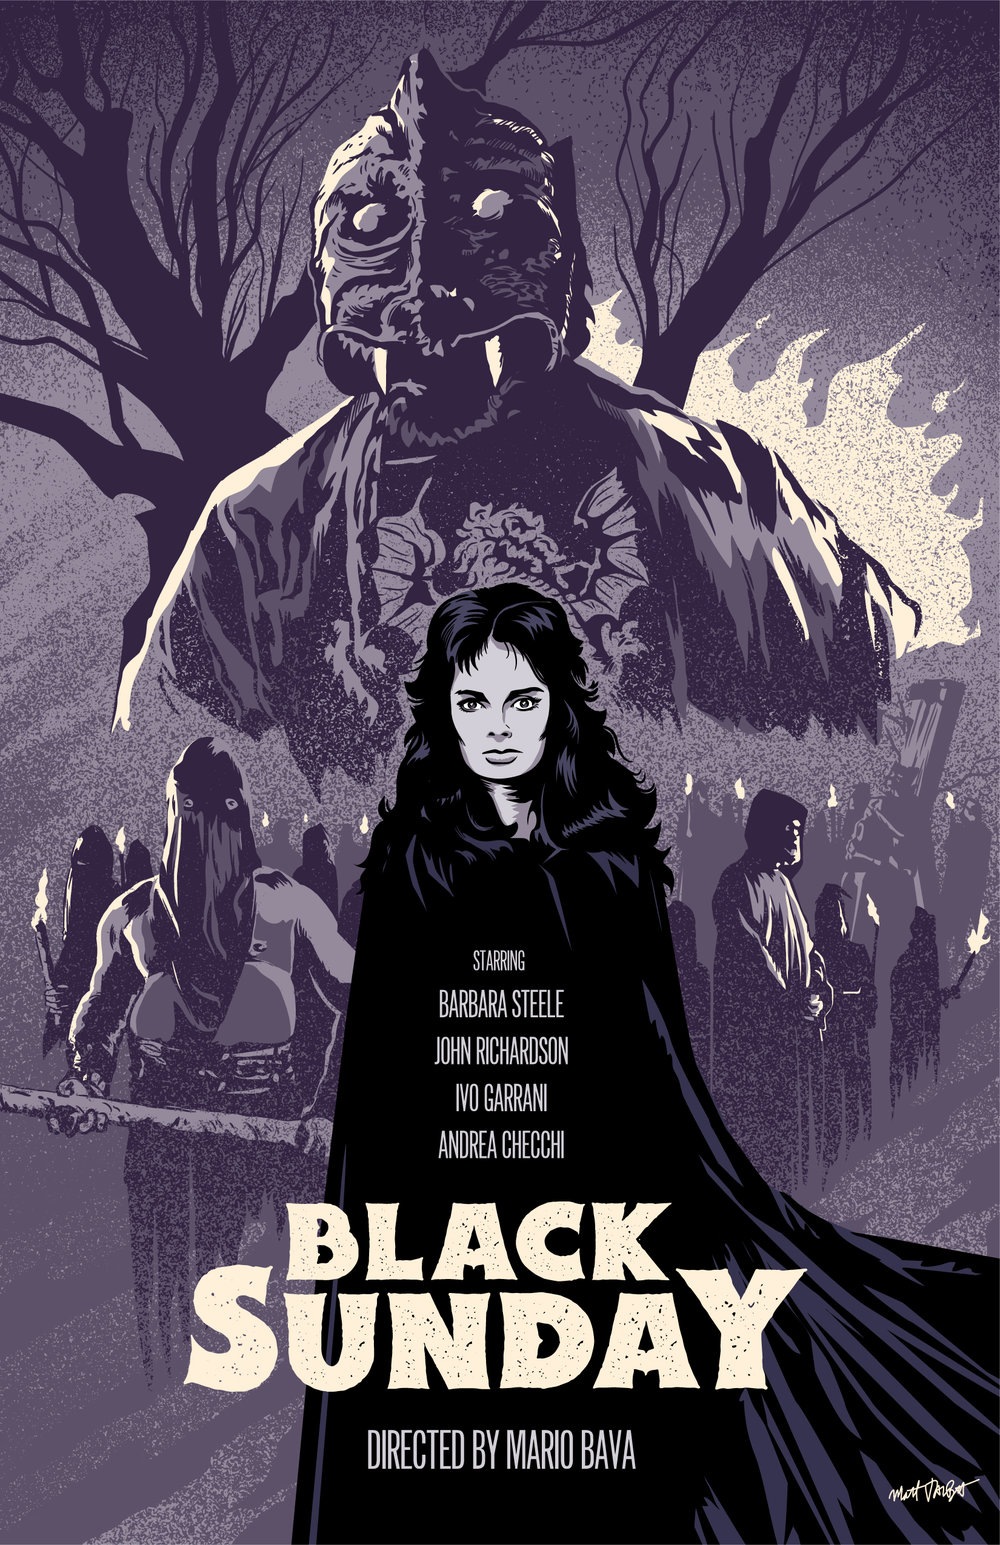 Black Sunday Poster by Matt Talbot